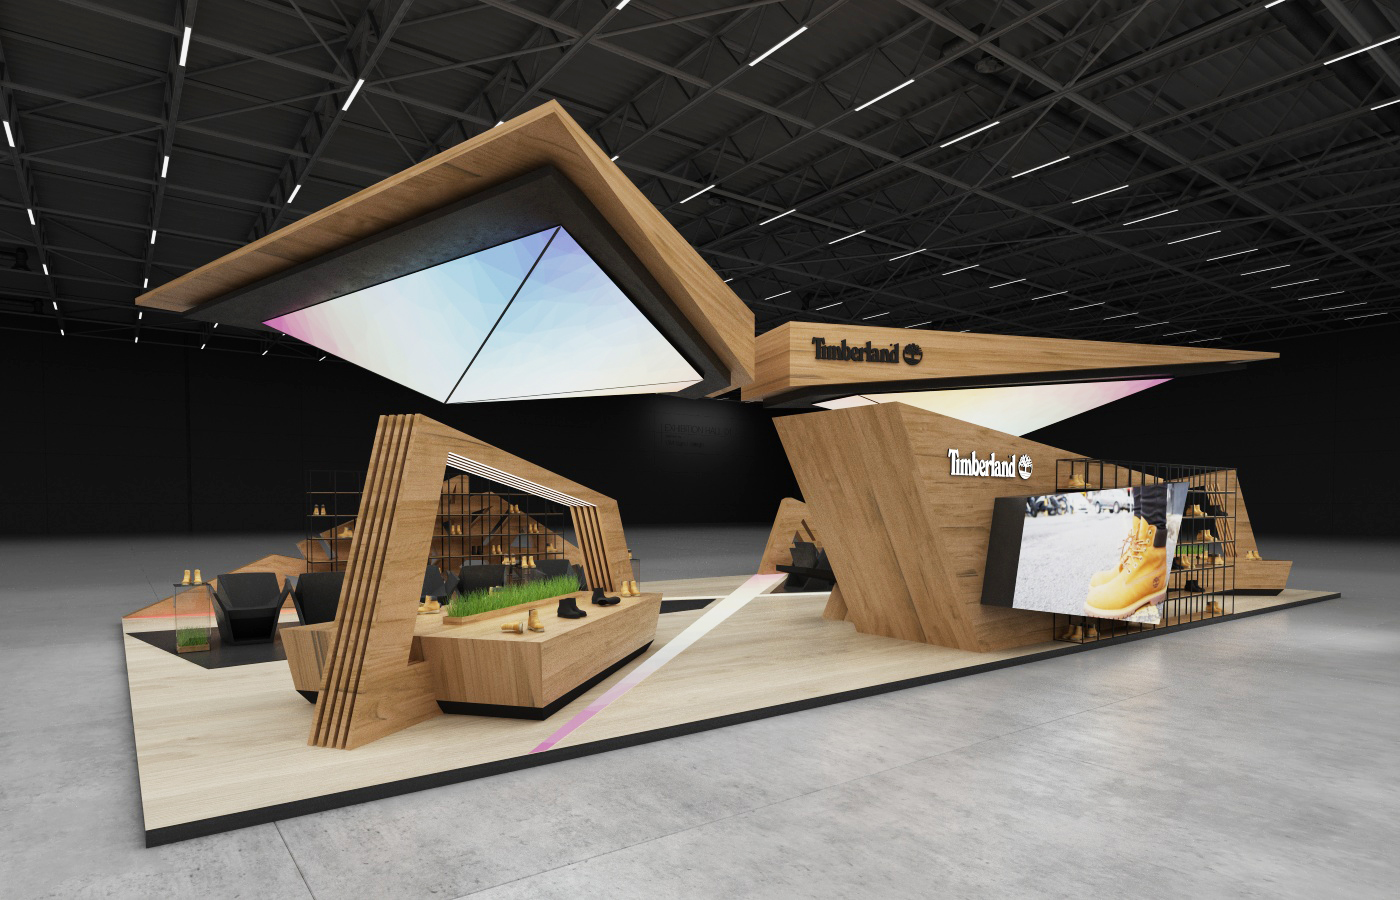 Exhibition Stand Shelves : Timberland exhibition stand on behance